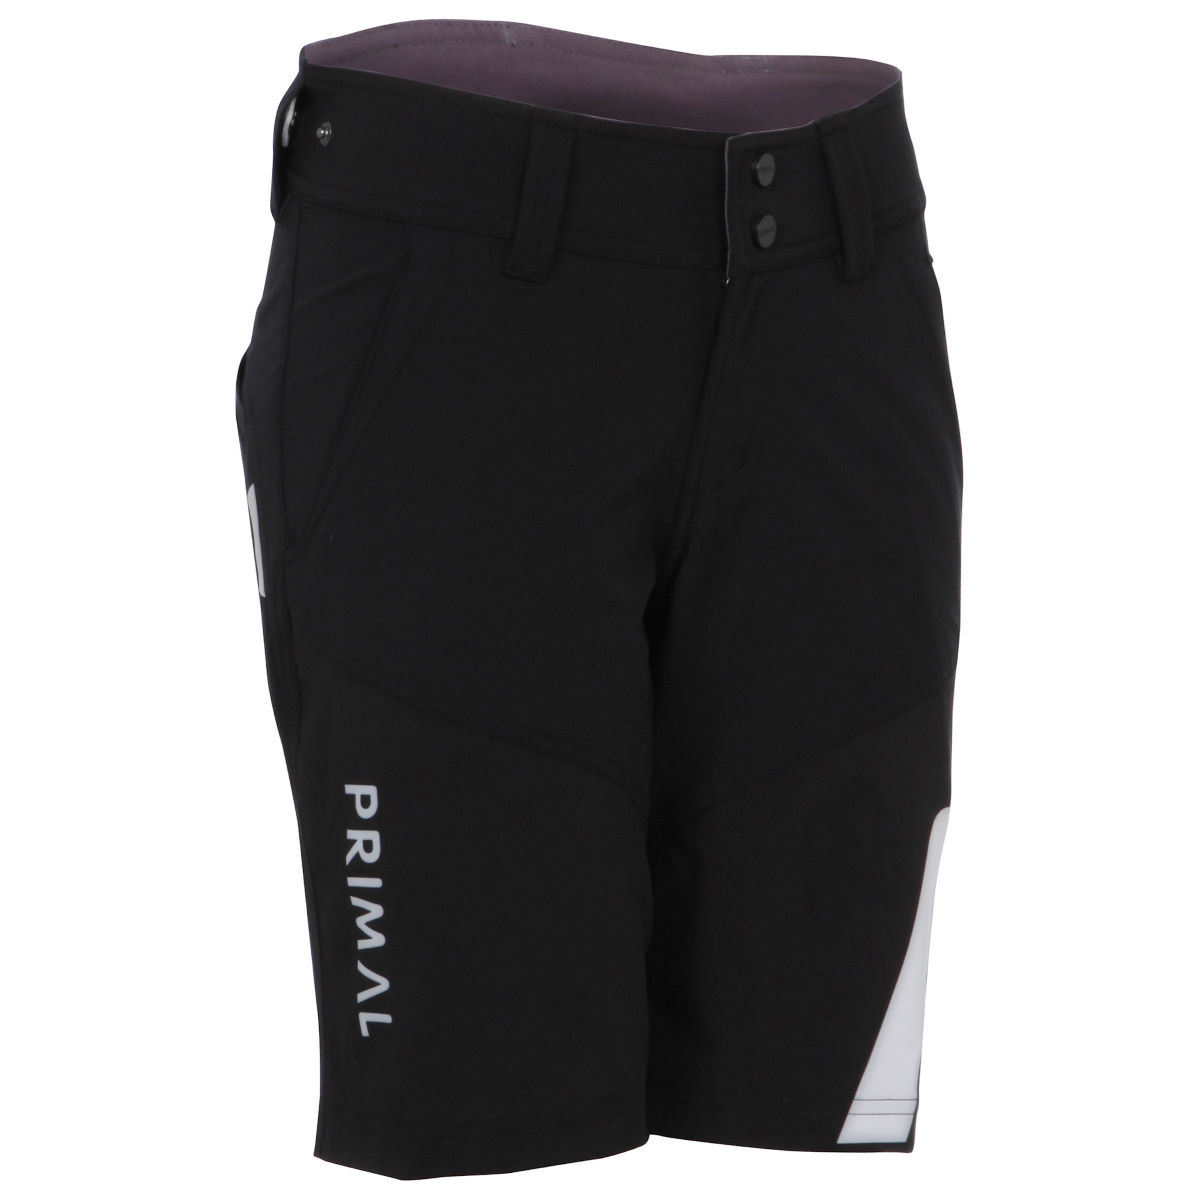 Short Femme Primal Onyx Escade (coupe ample) - M Noir Shorts amples